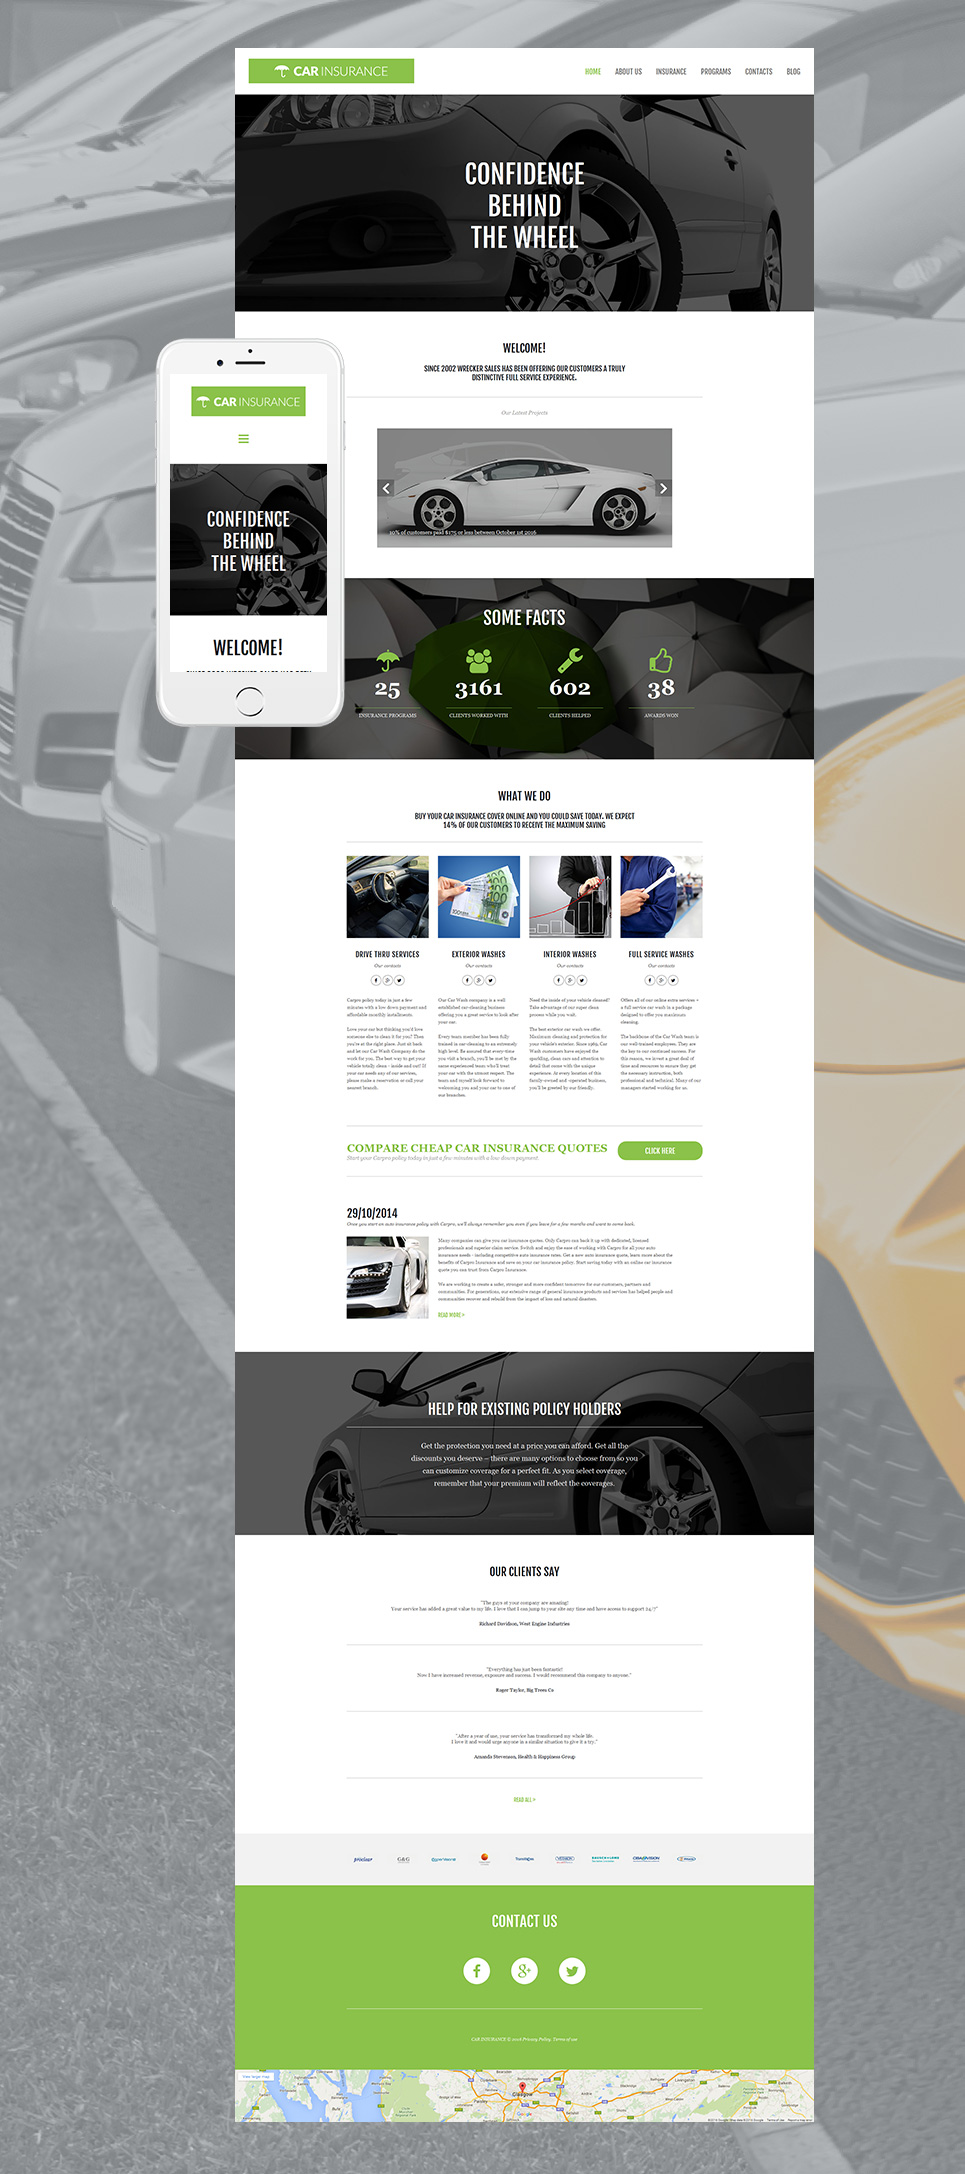 Automobile web design with blog functionality